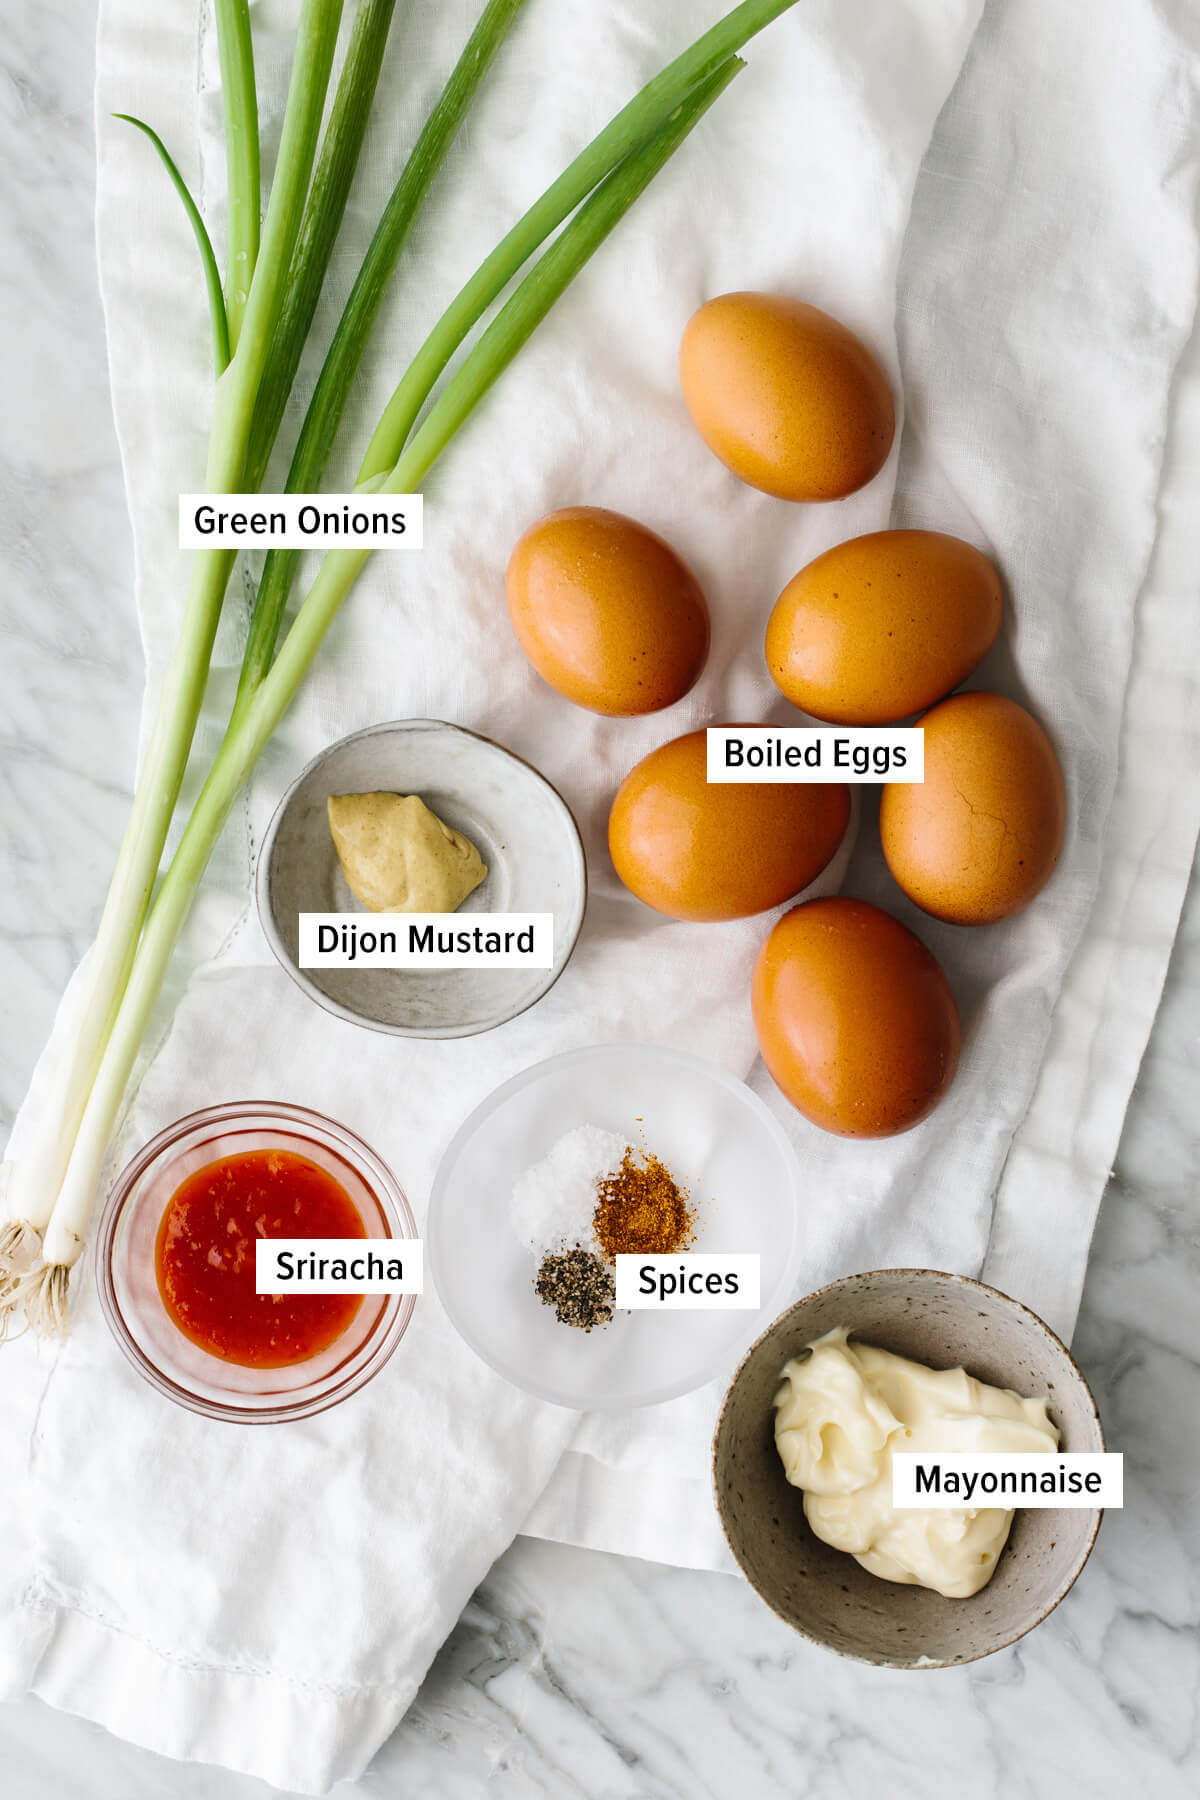 Ingredients for spicy deviled eggs laid out on a table.